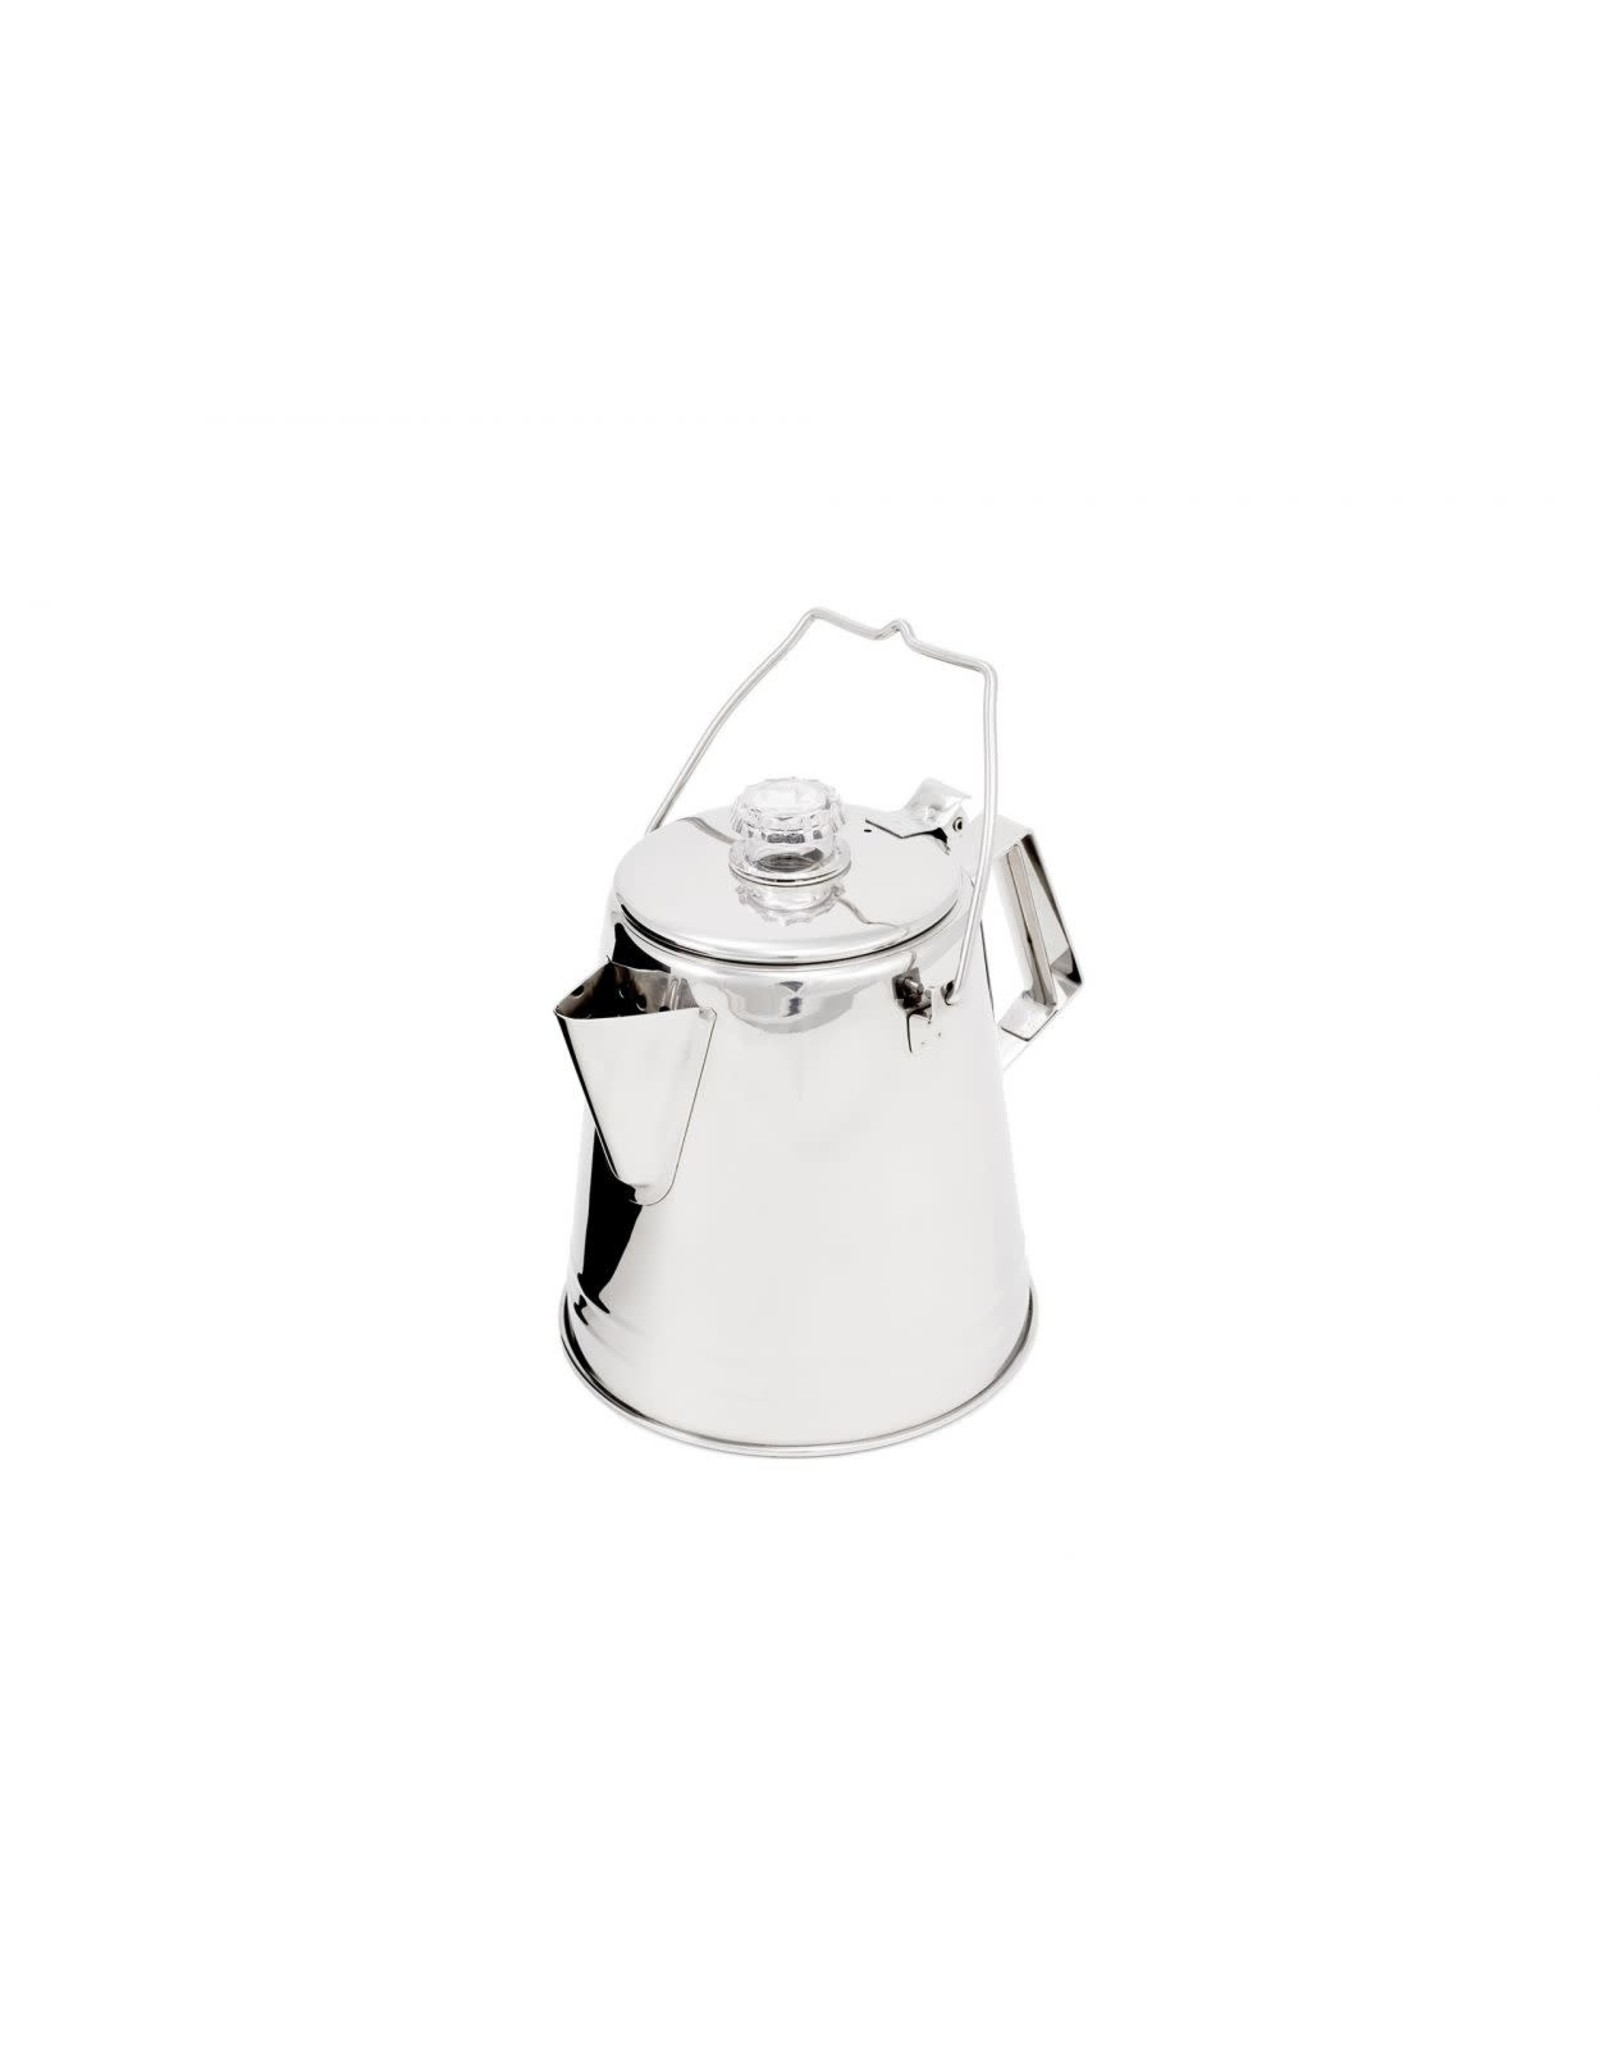 GSI Outdoors GSI Outdoors Glacier Stainless 14-Cup Percolator